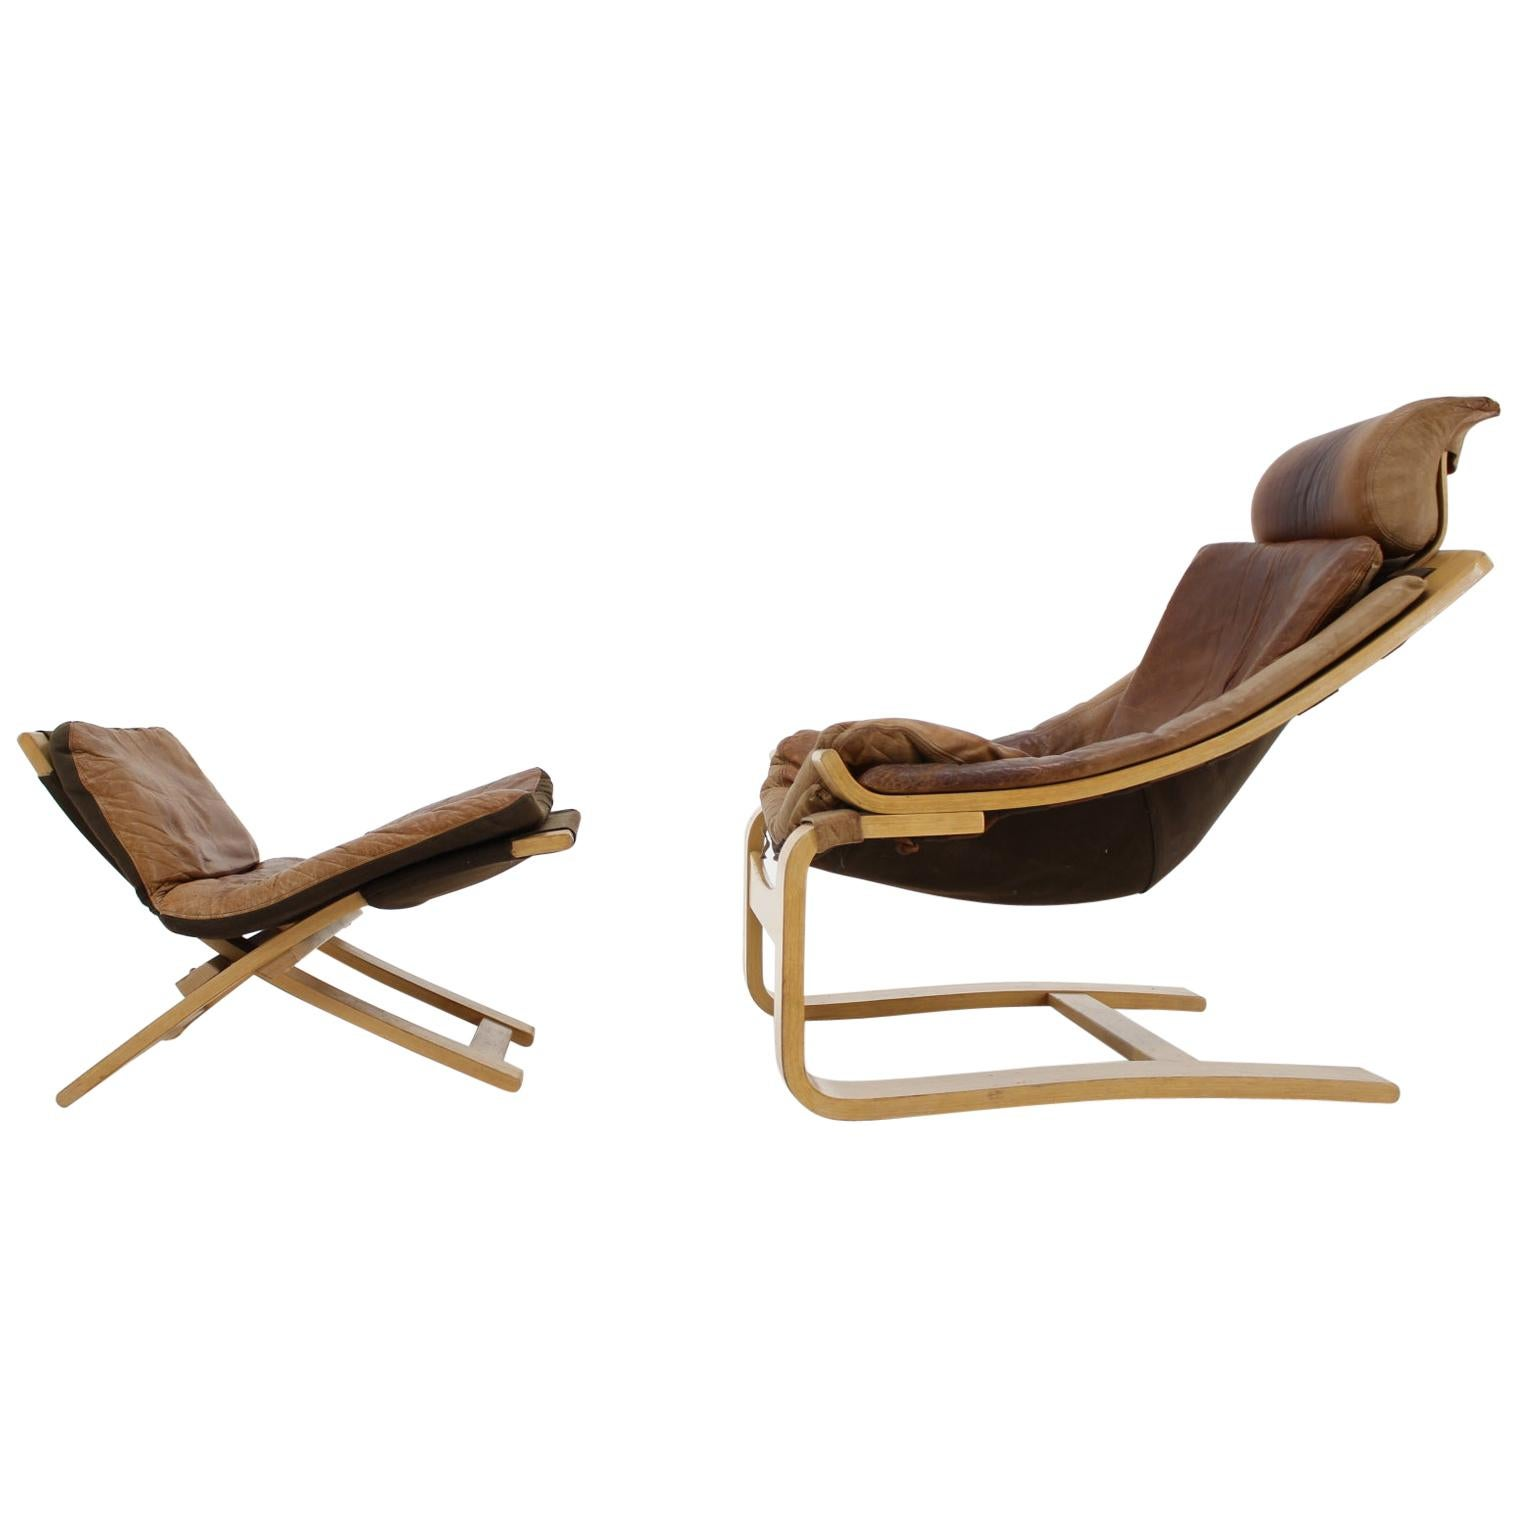 Kroken Leather Lounge Chair and Stool by Ake Fribytter for Nelo, Sweden, 1970s